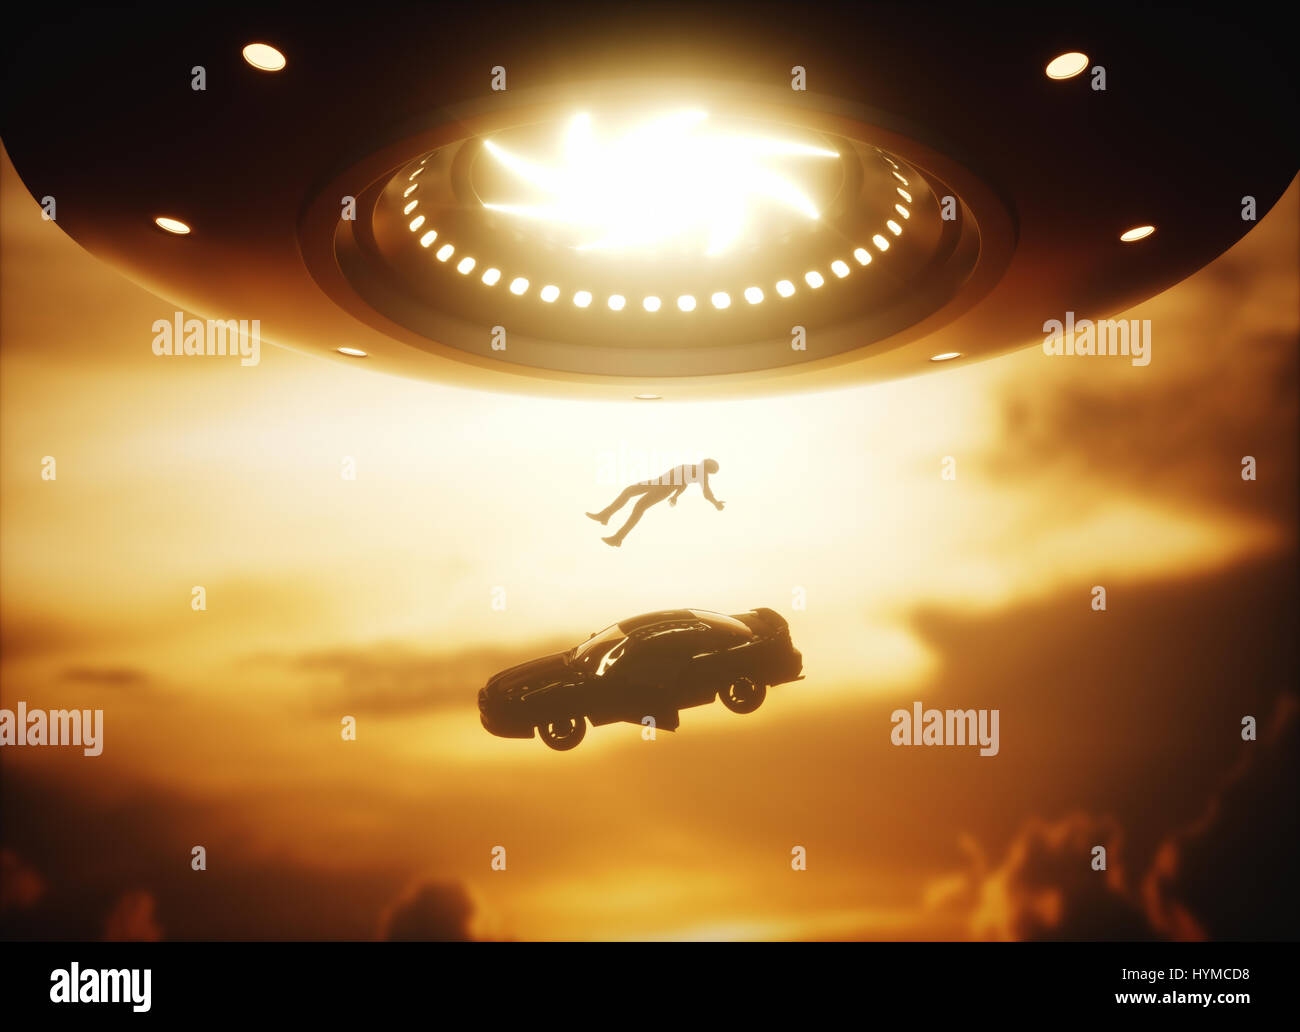 3D illustration. Man and his car floating to inside of alien ship. Concept of alien abduction. - Stock Image